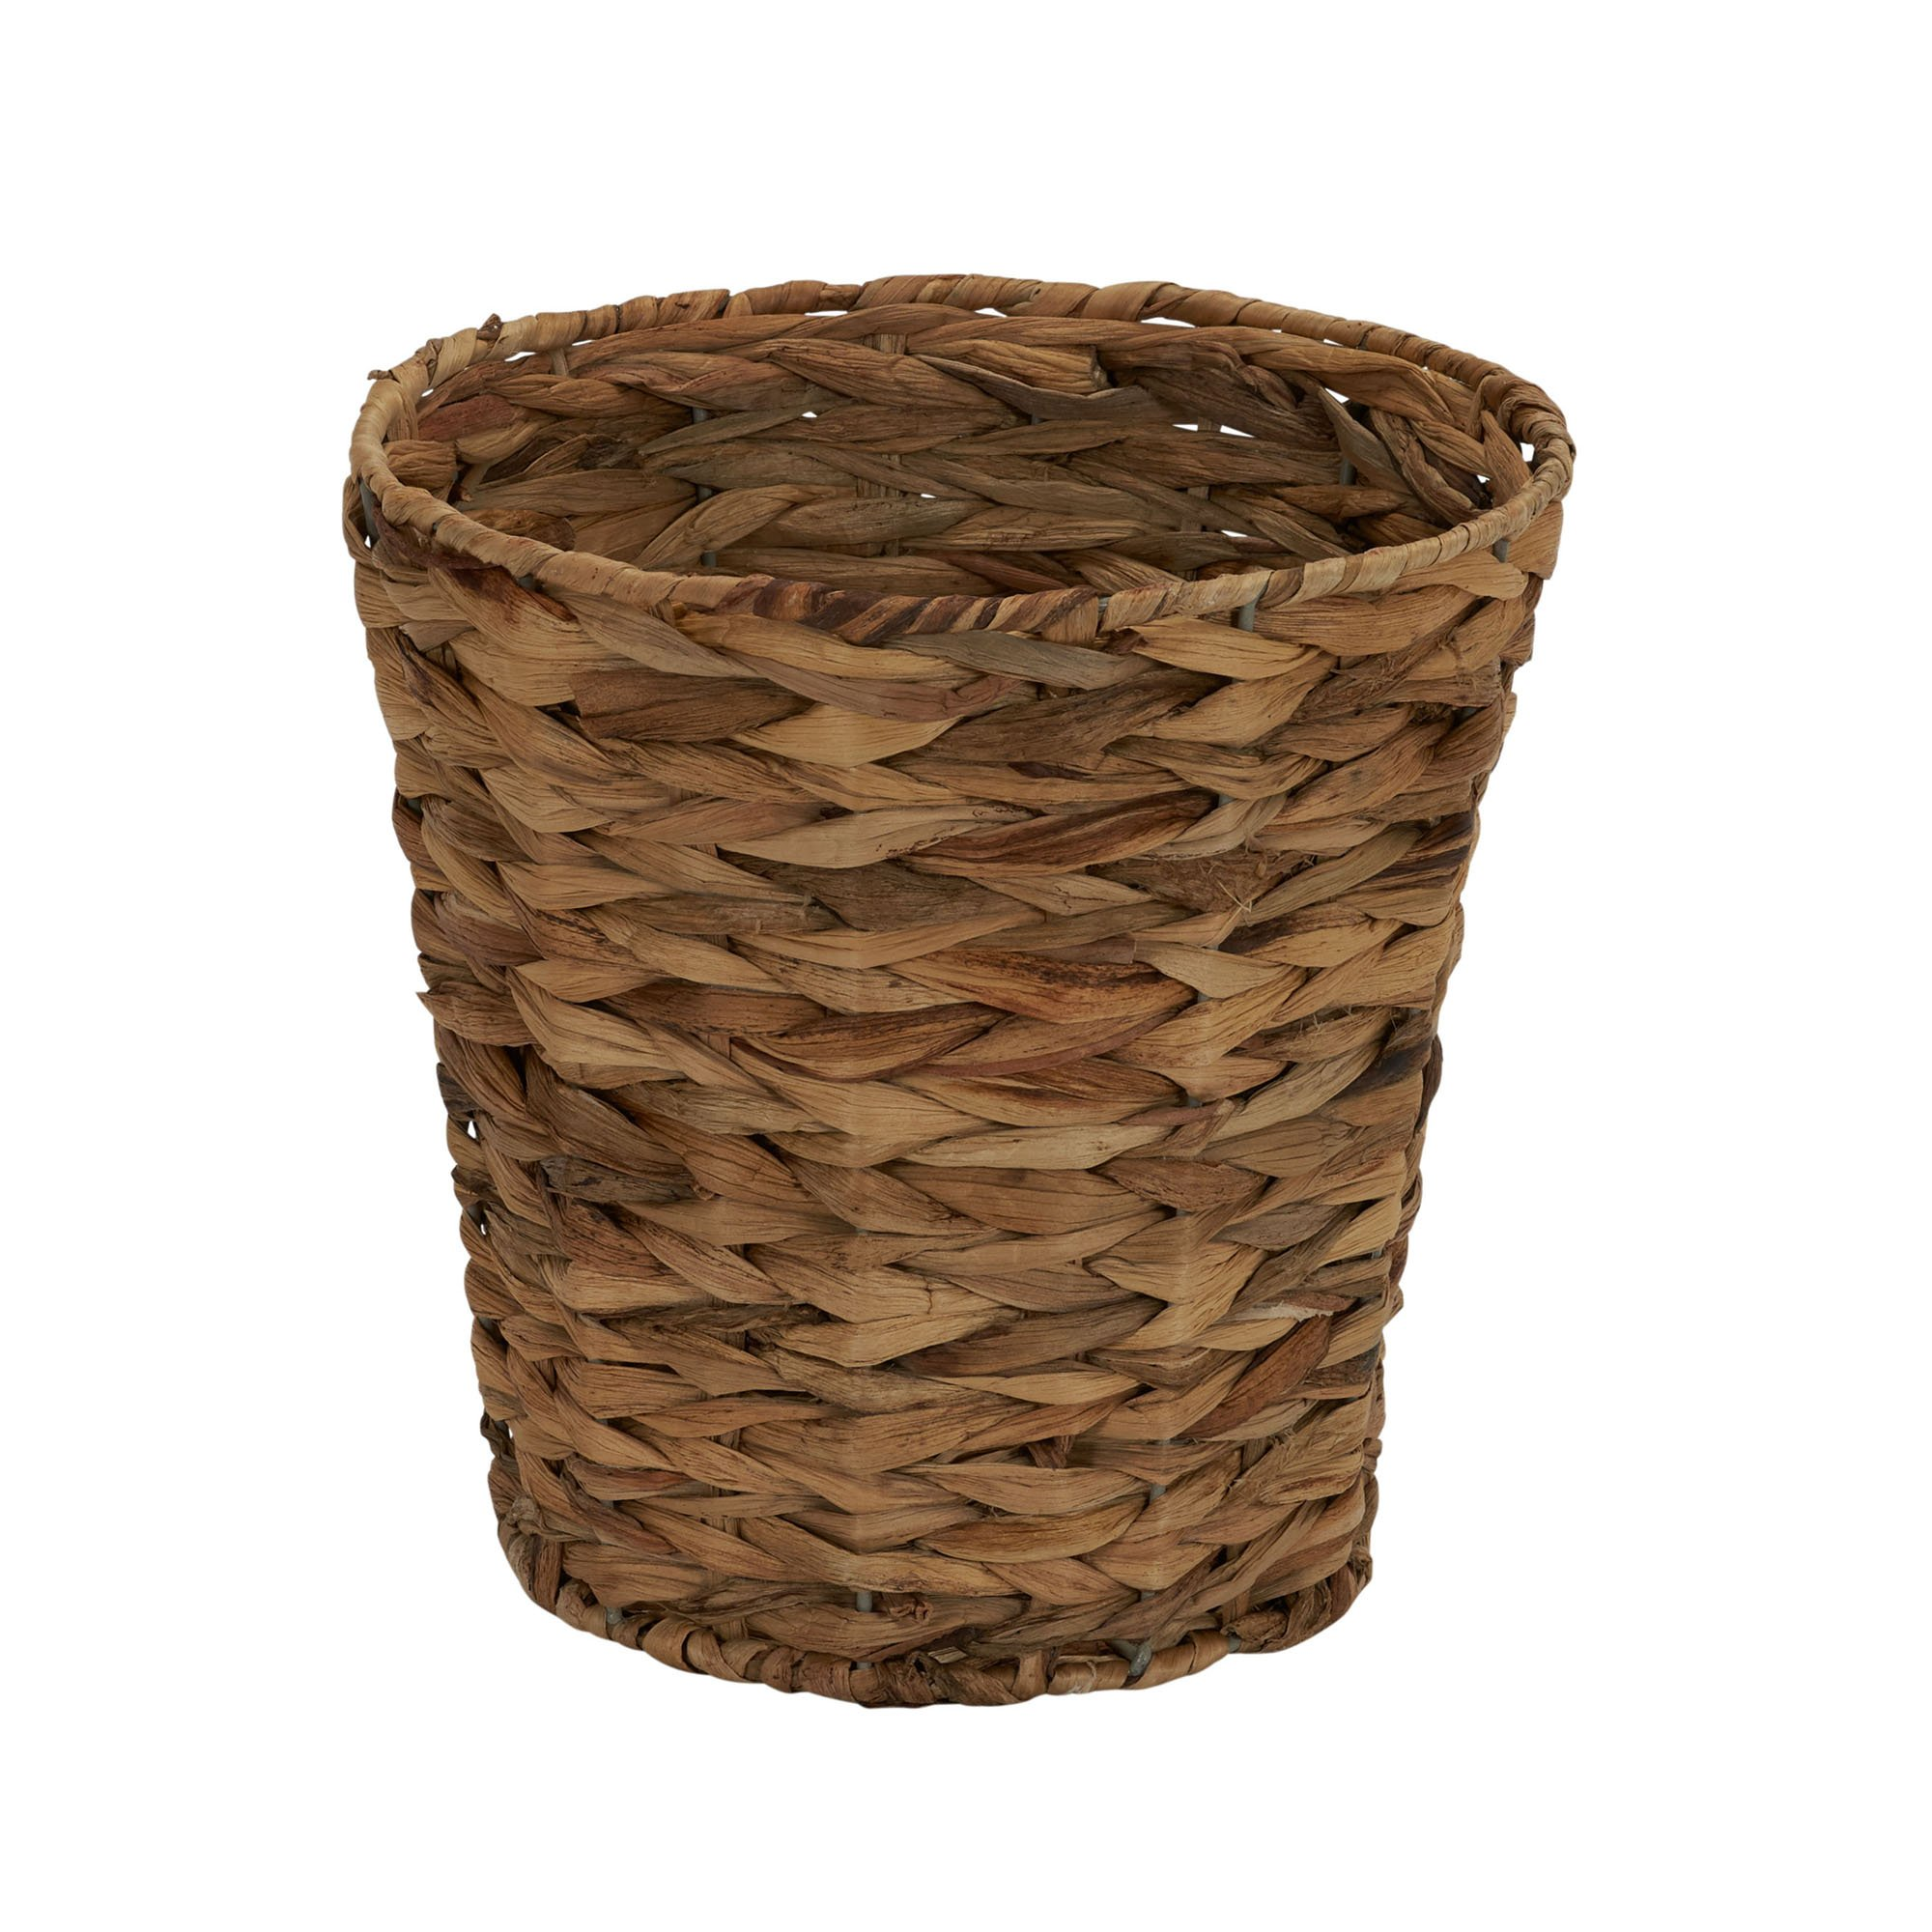 Household Essentials ML-6692 Woven Water Hyacinth Wicker Waste Basket   For Bathrooms & Bedrooms   Natural by Household Essentials